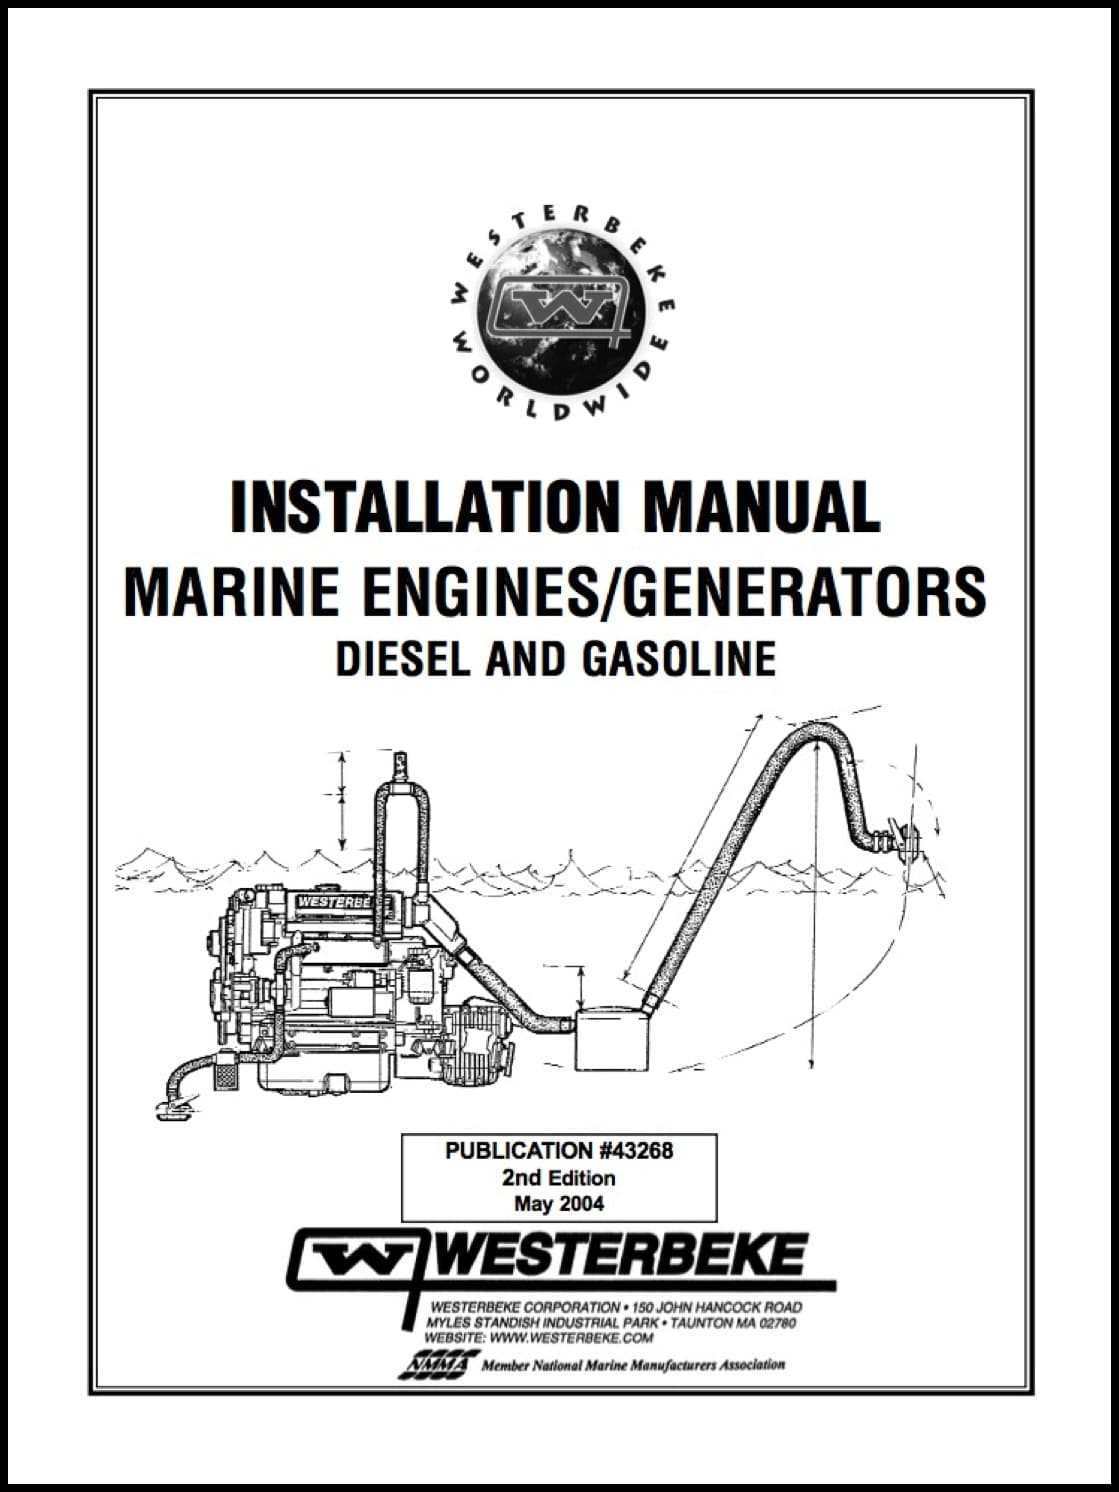 Delaywipers likewise Trl besides Marine Engine Generator Installation Diagram together with 1968 Camaro Tic Toc Tach Wiring Diagram in addition more 139. on 68 vw wiring diagram